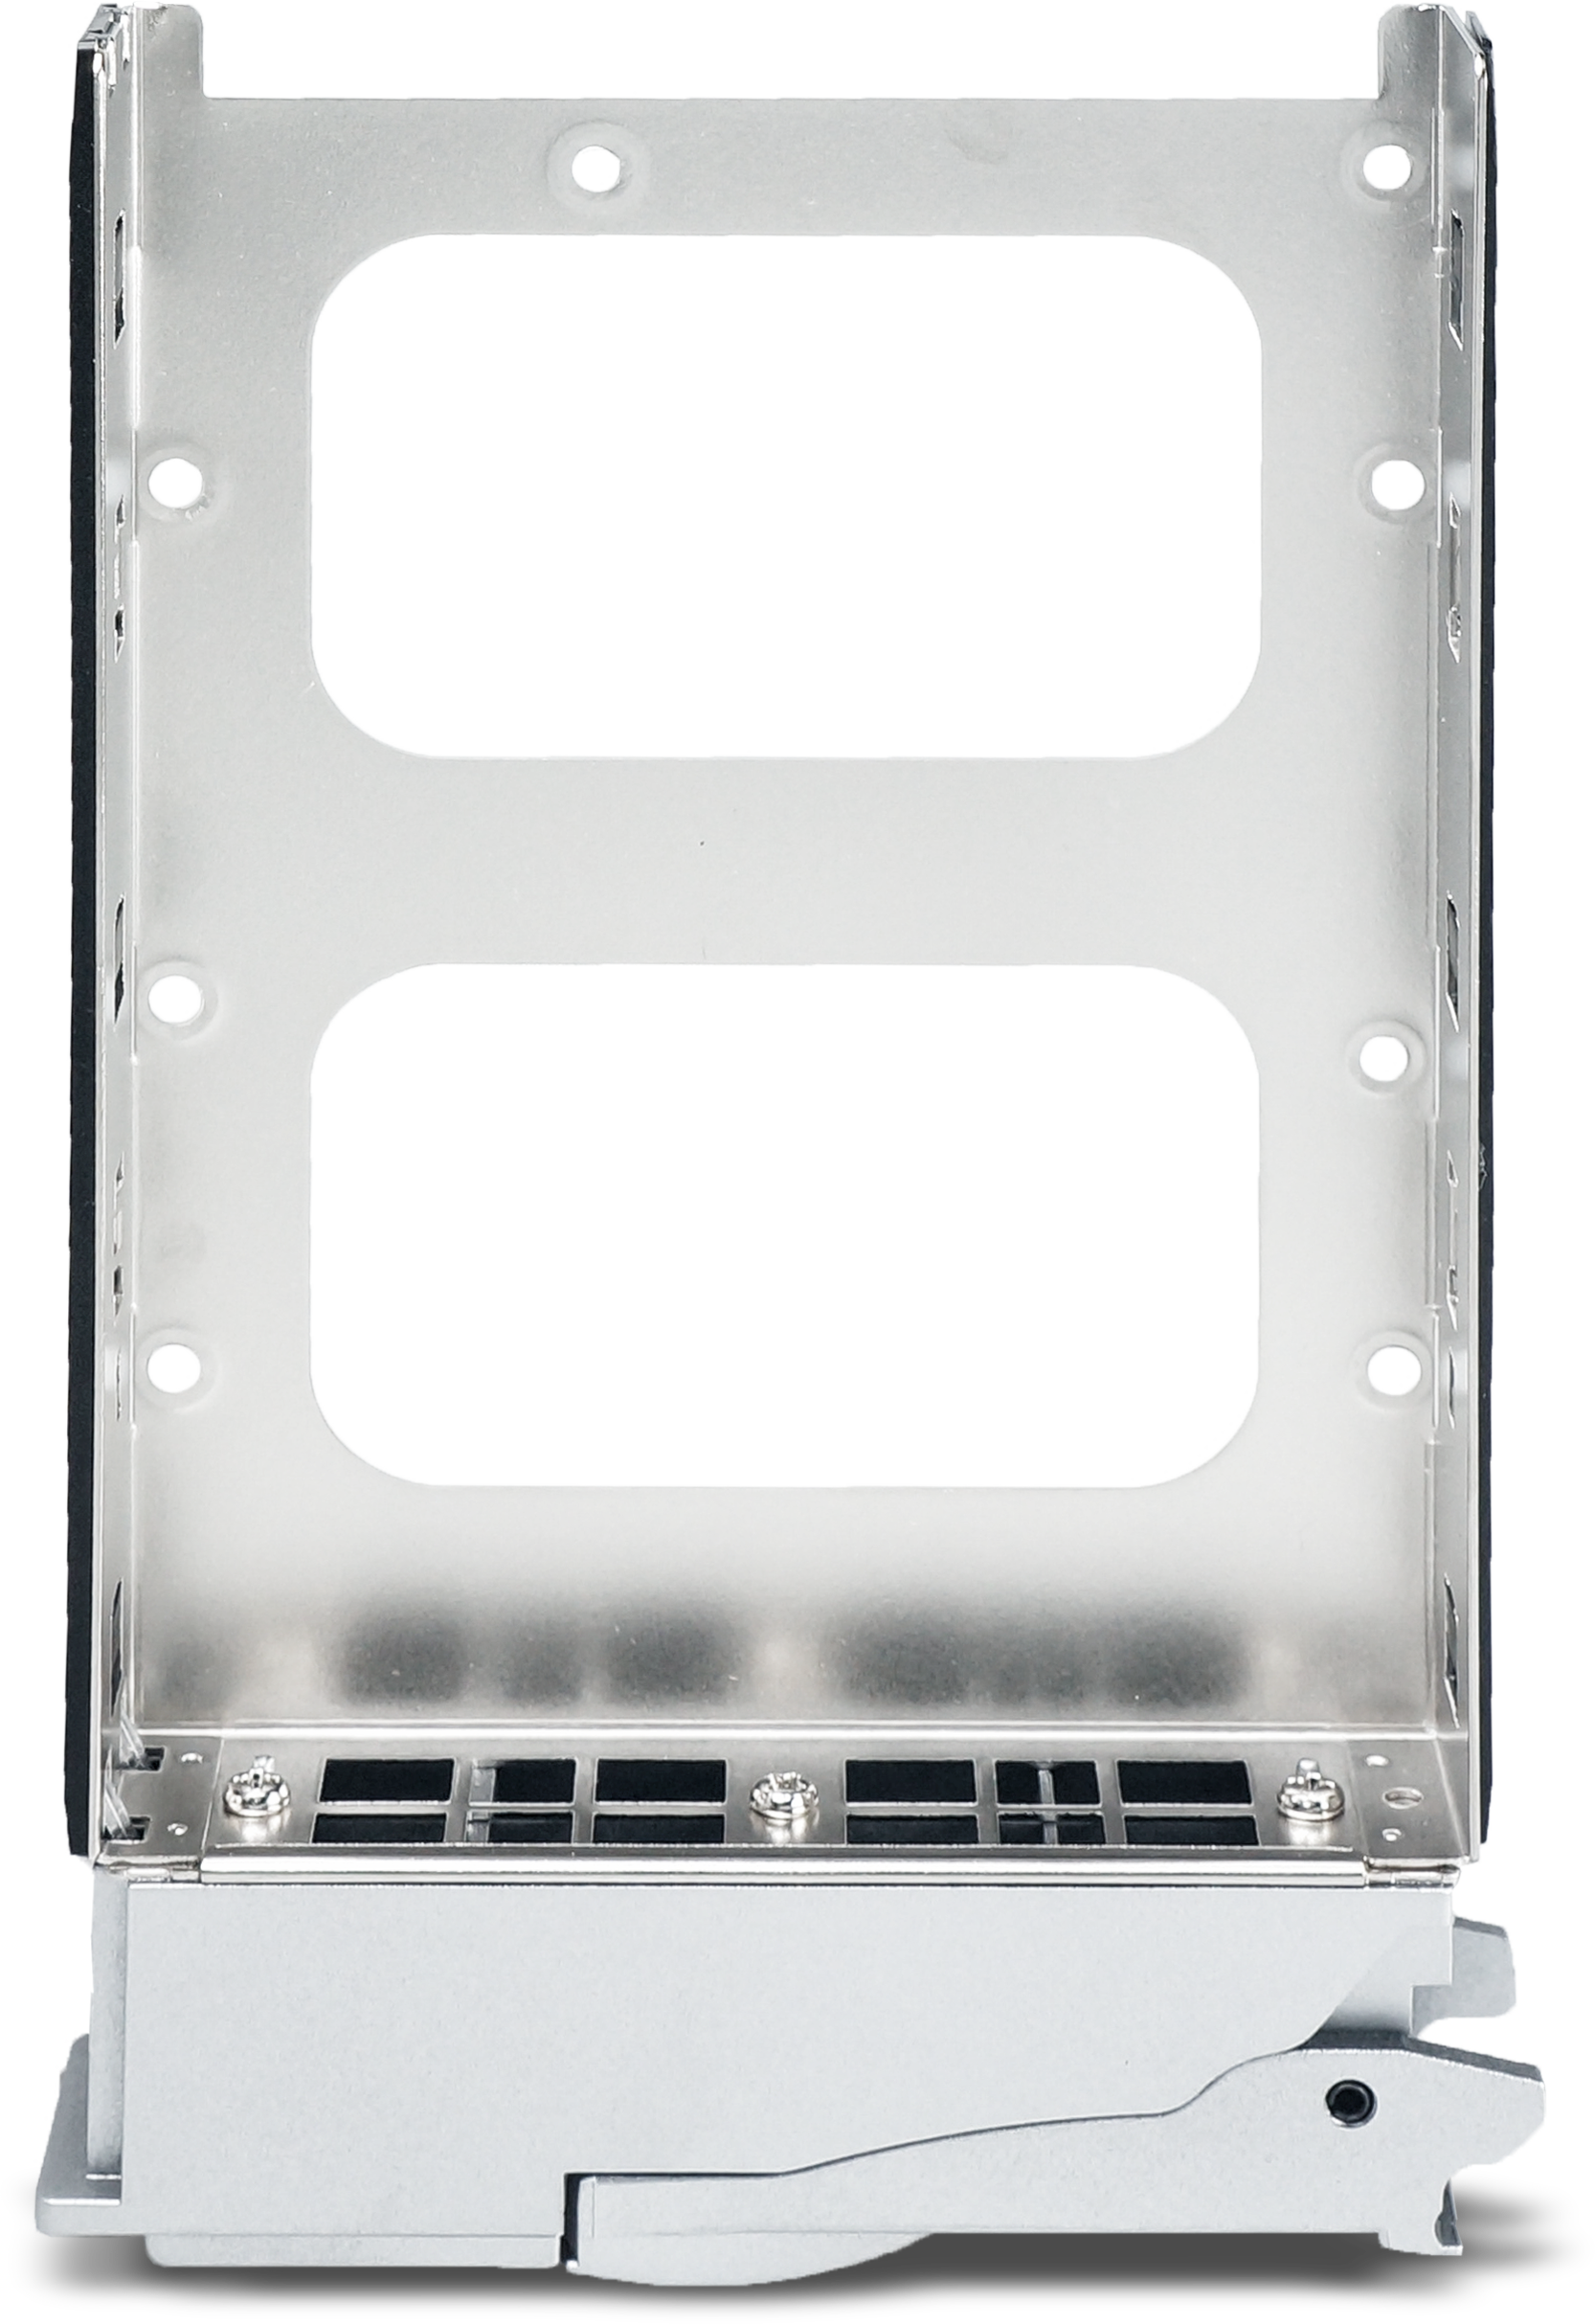 NA762TB3 drive tray support both 2.5 and 3.5 inches HDDs